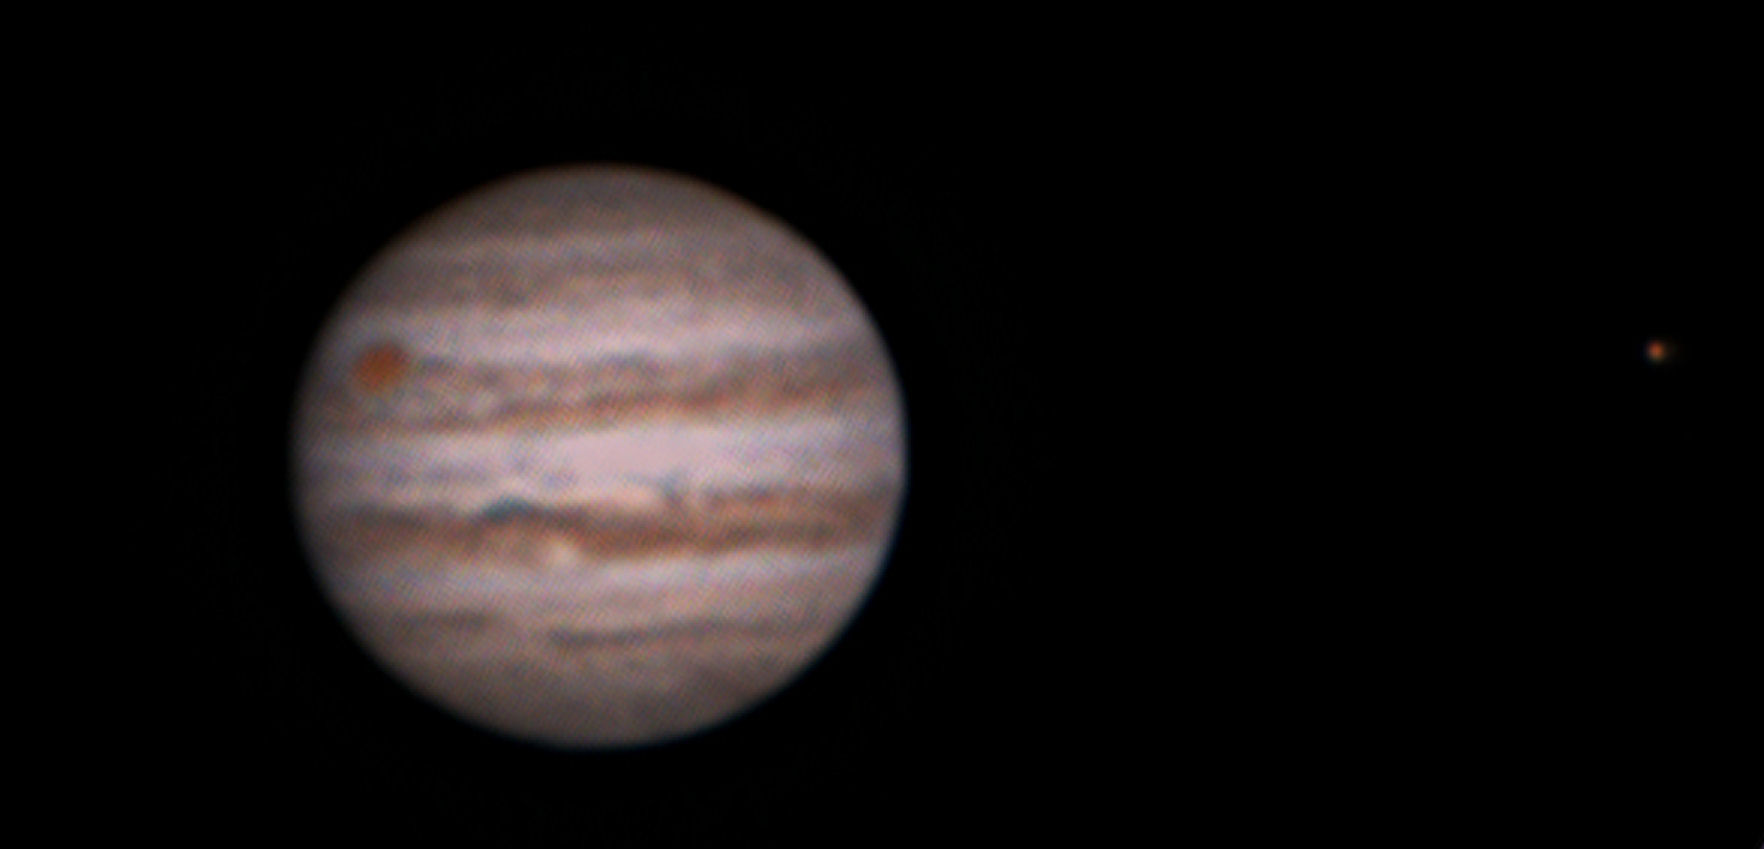 Jupiter By Alan Clitherow. 23rd January 2016 at around 0330am. This picture shows Jupiter presented South-up with The Great Red Spot, and the widening North Equatorial Belt with the White Spot Zulu clearly visible.